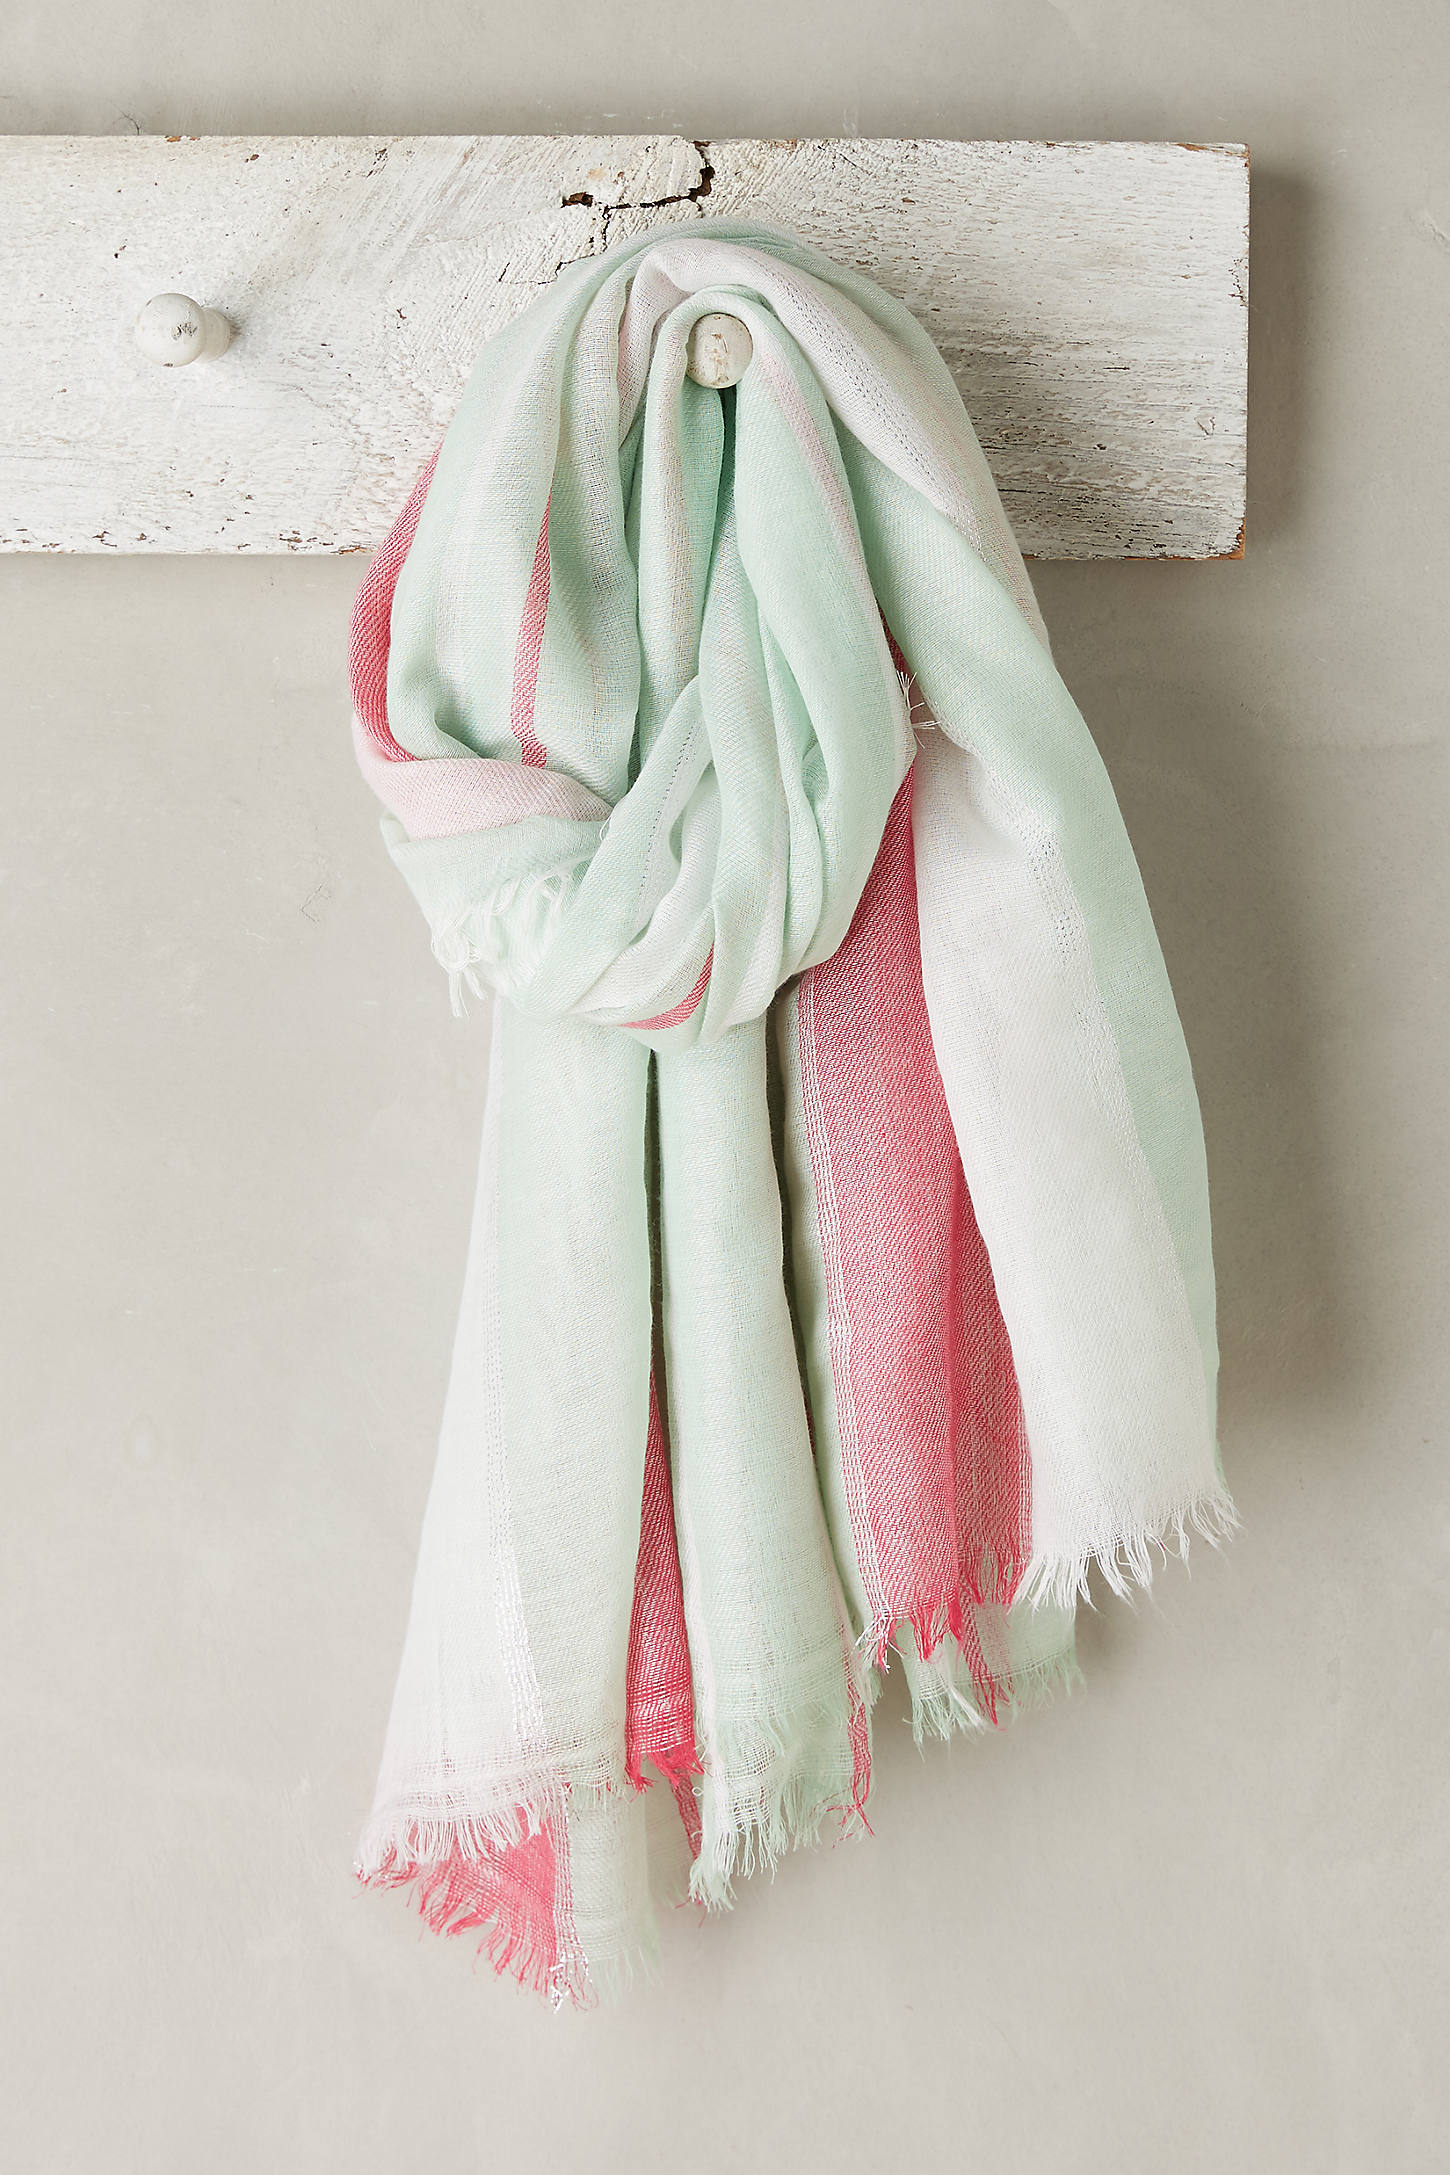 Minted Square Scarf